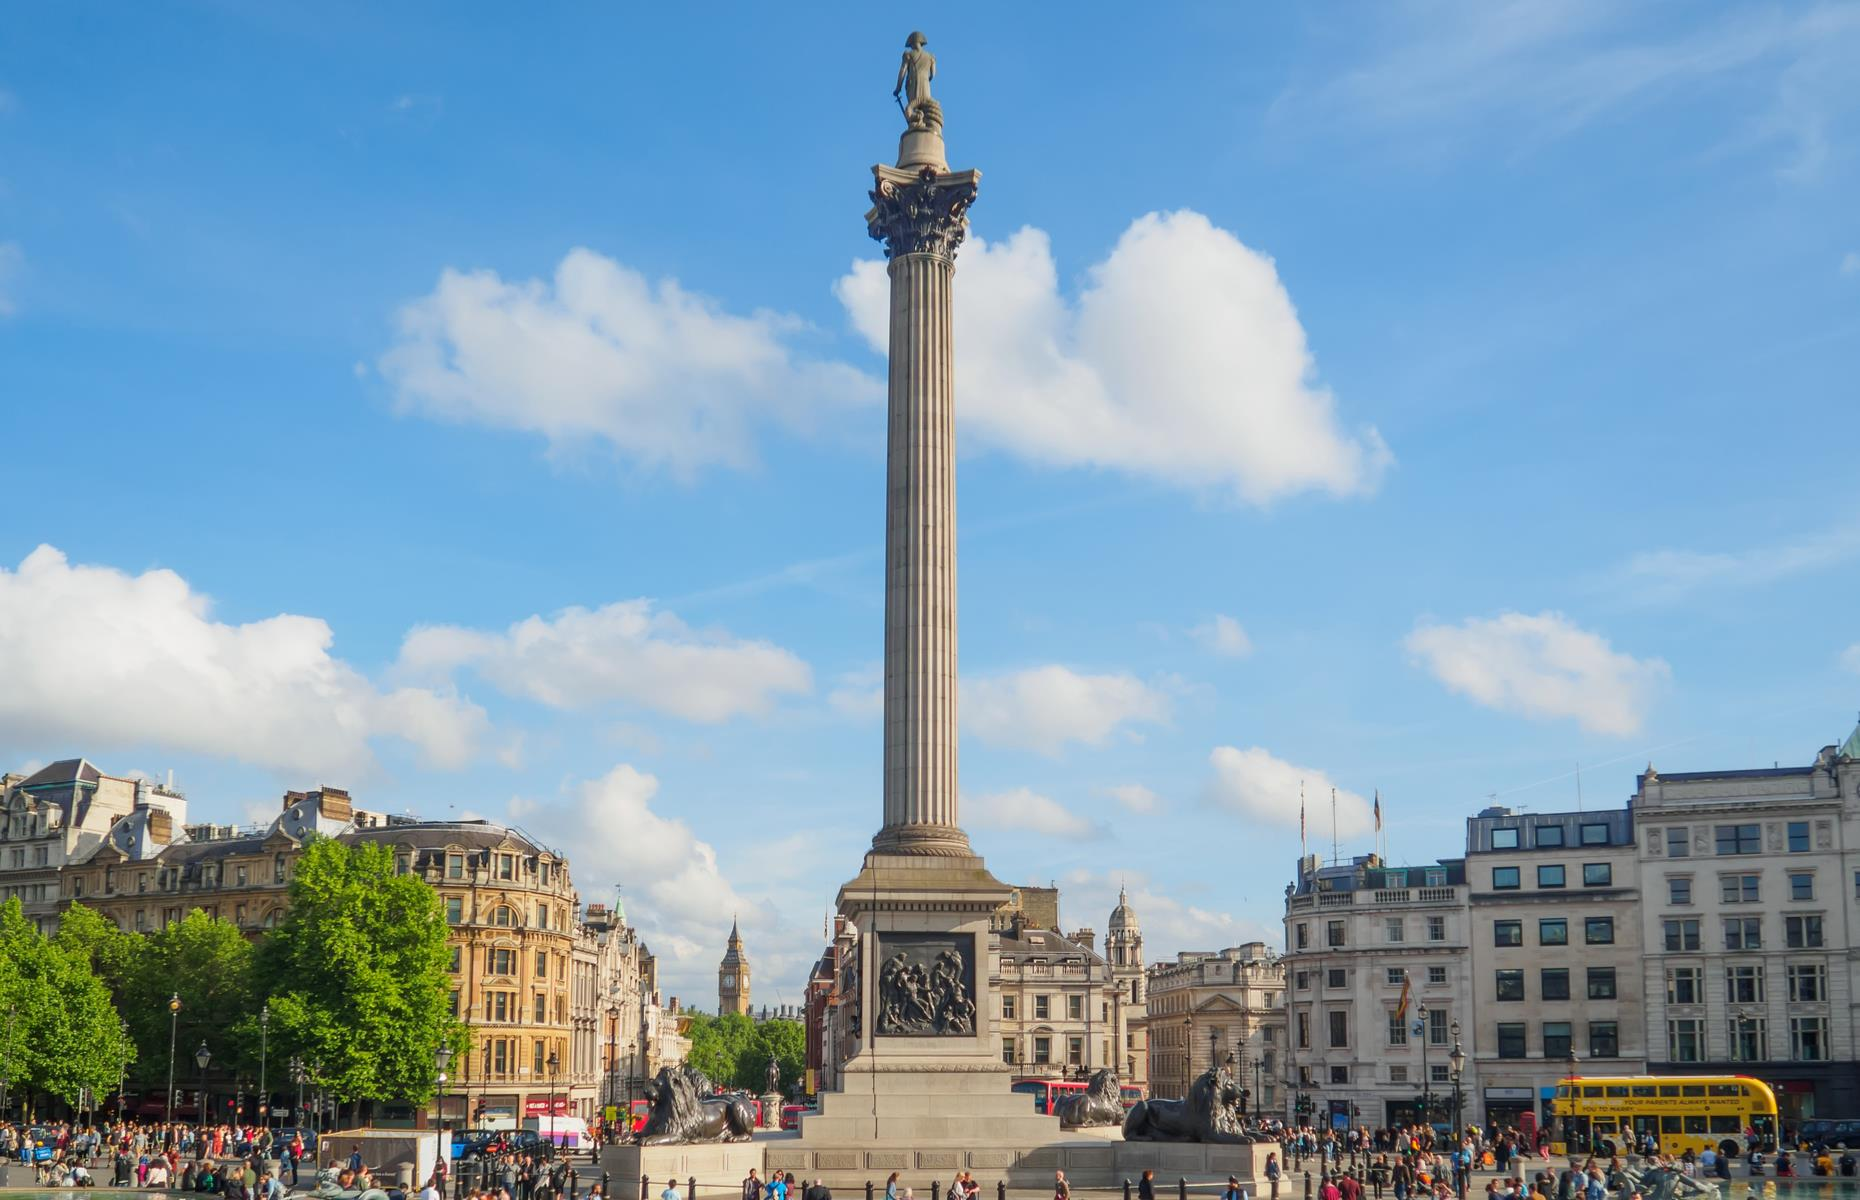 Slide 4 of 28: Nelson's Column (pictured) dominates London's Trafalgar Squareand immortalizes the lauded Admiral Horatio Nelson, who died at the Battle of Trafalgar in 1805having defeated the French. It almost never existed, though. Politician and officer Sir Frederick William Trench wanted to commemorate the battle with something rather different: a gargantuan pyramid structure larger than St Paul's Cathedral. Luckily Trench's wishes were never fulfilled and the tribute to the late admiral was built instead.